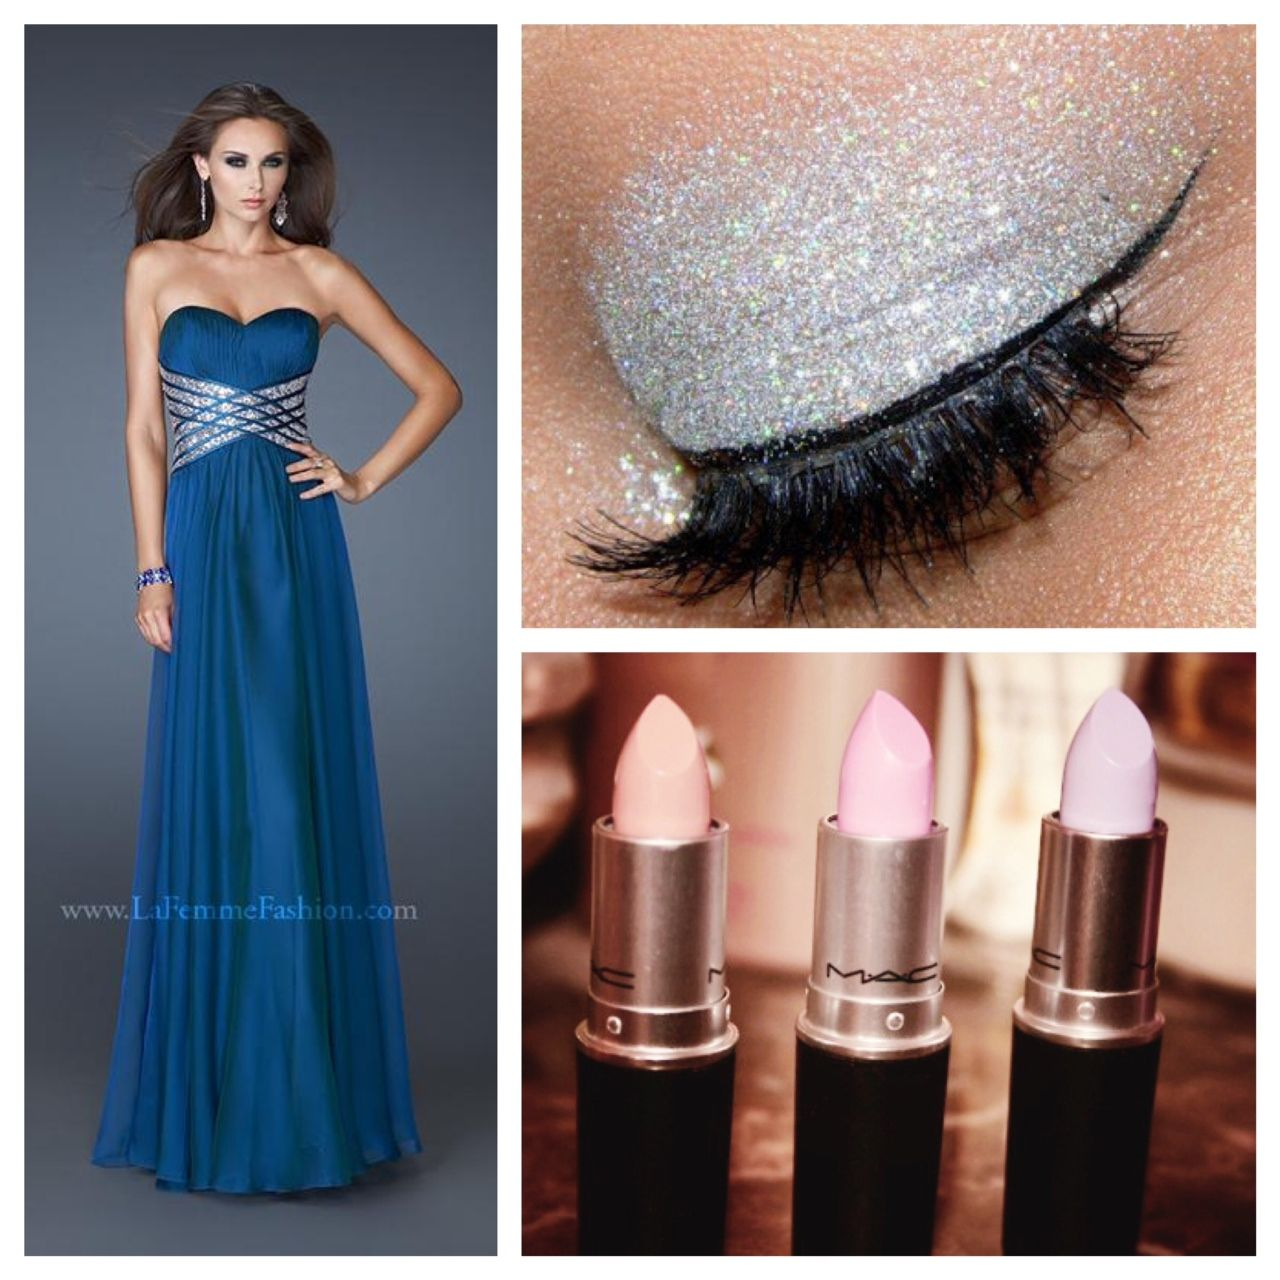 What make up should you use with an aqua blue dress?